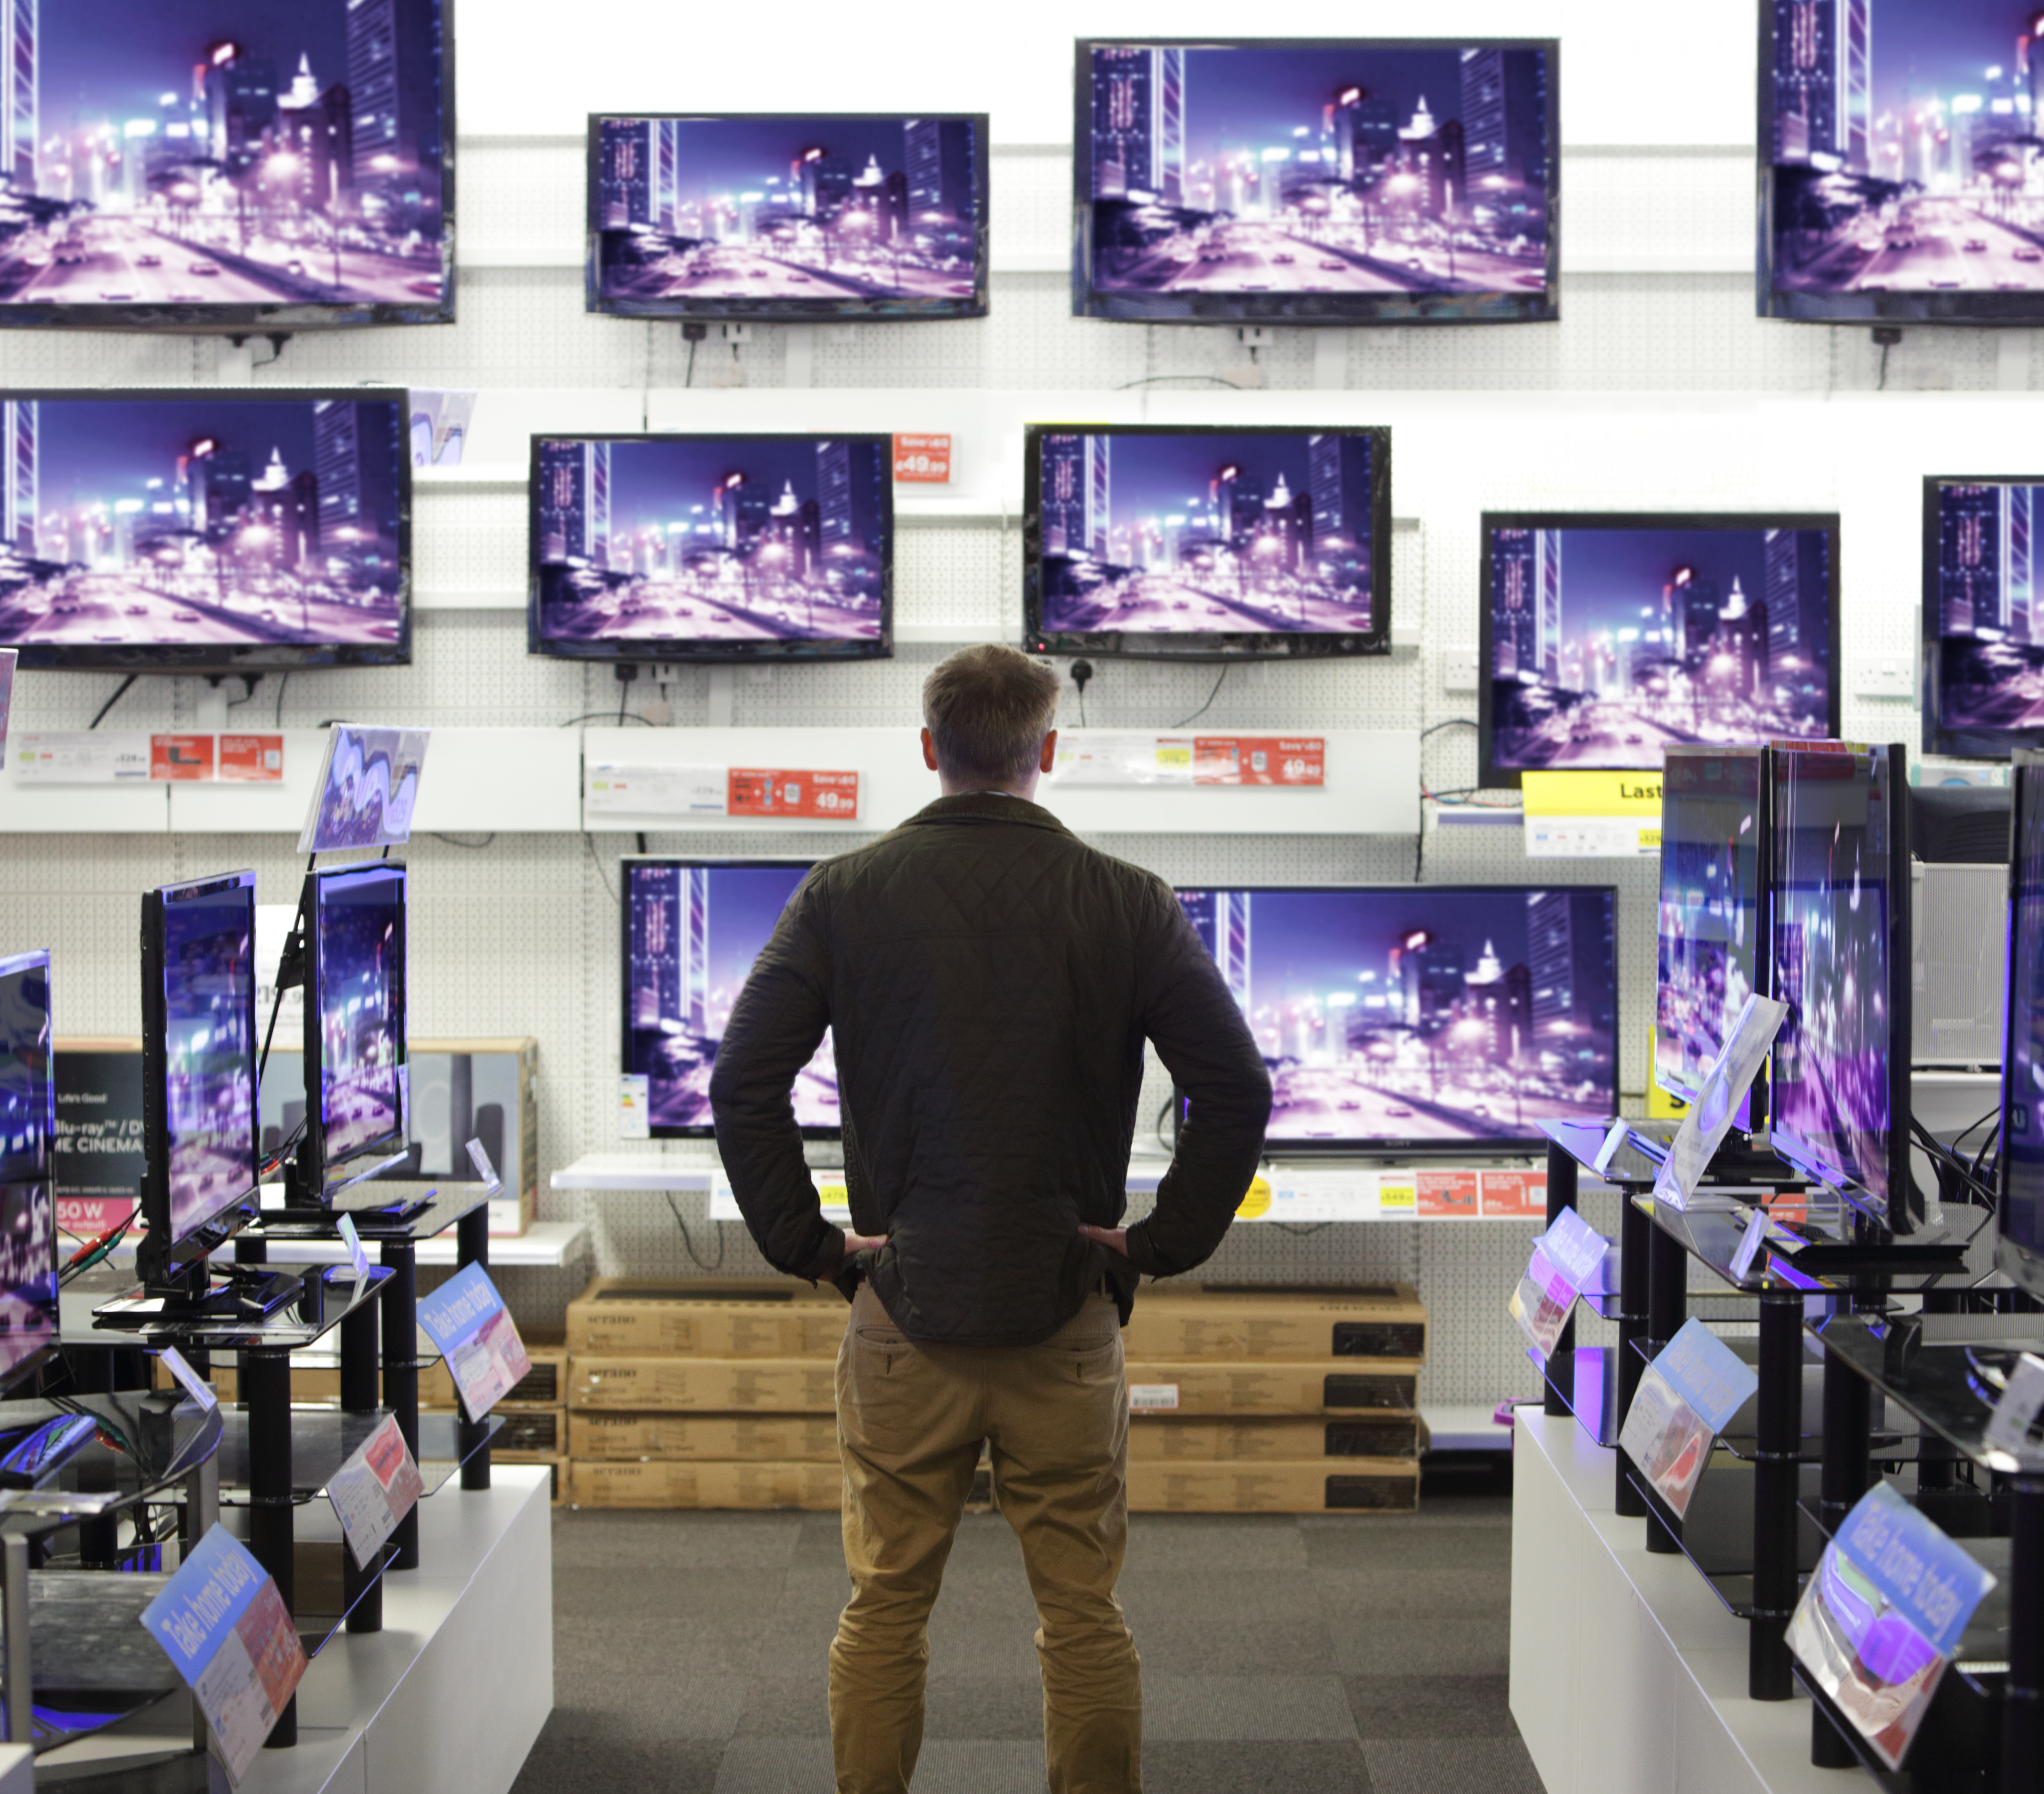 Man standing in shop surrounded by televisions